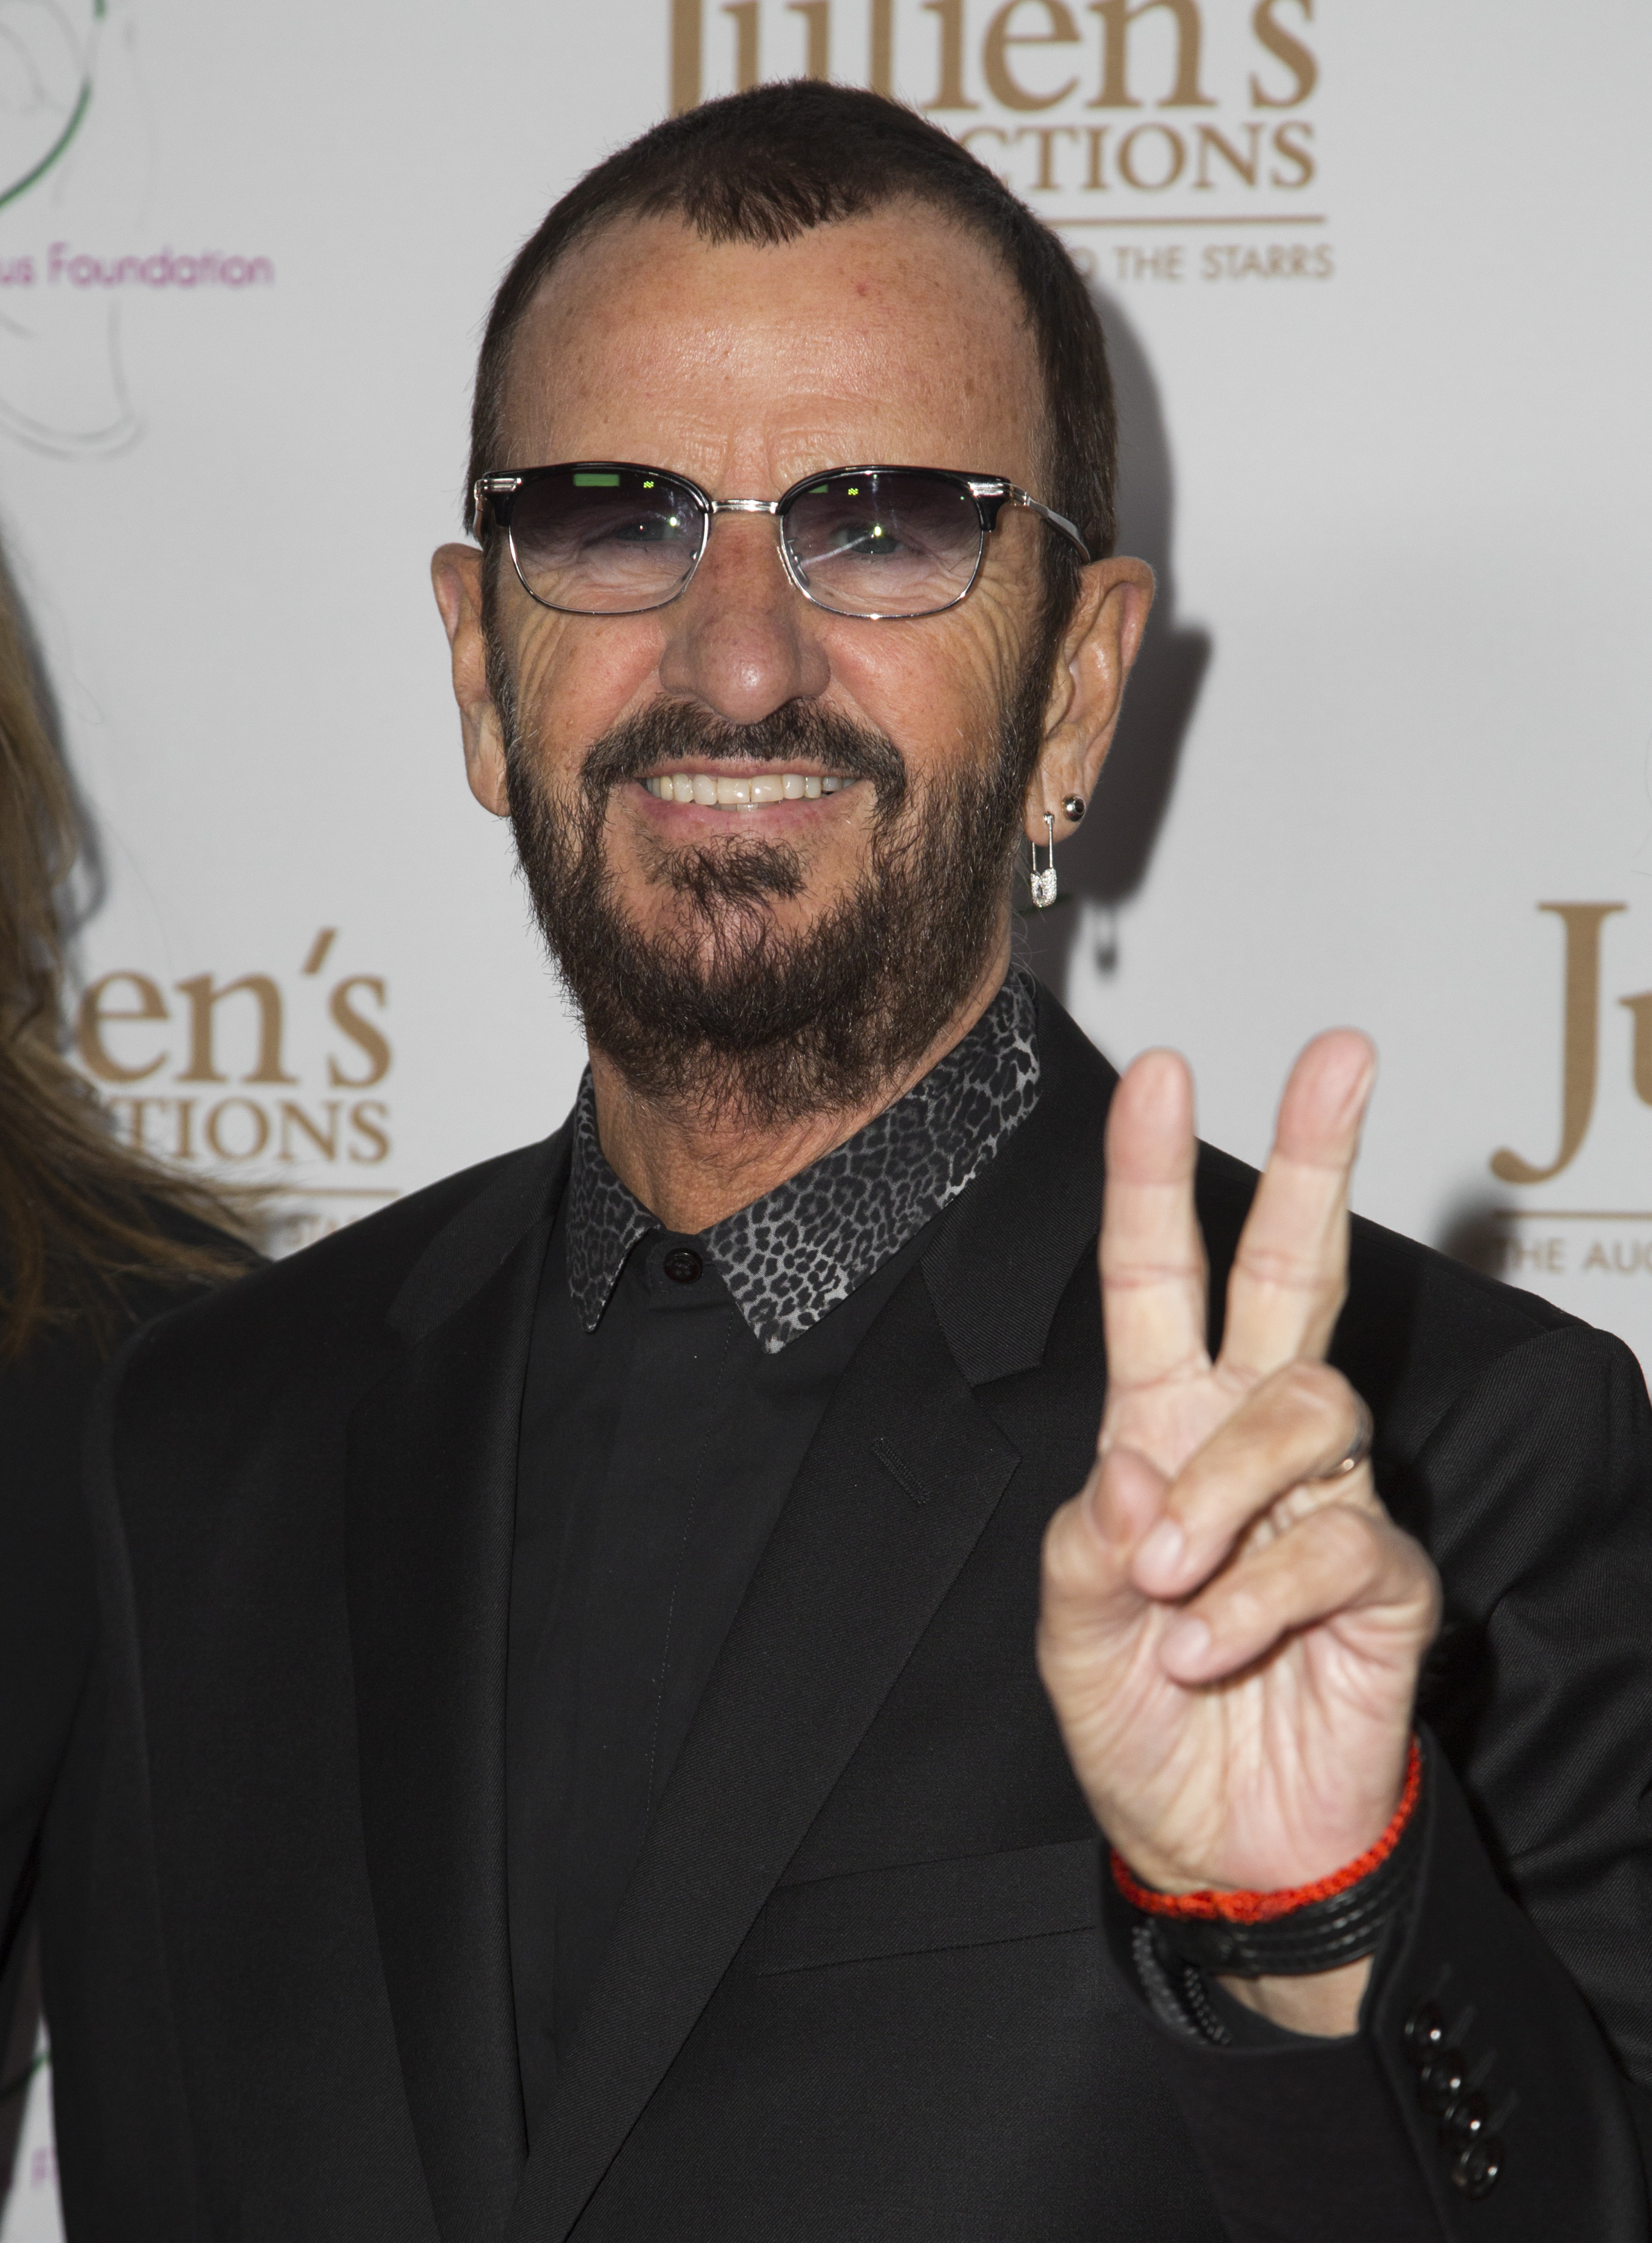 16 Bottles Of Wine A Day Piles Of Coke So How At 75 Does Ringo